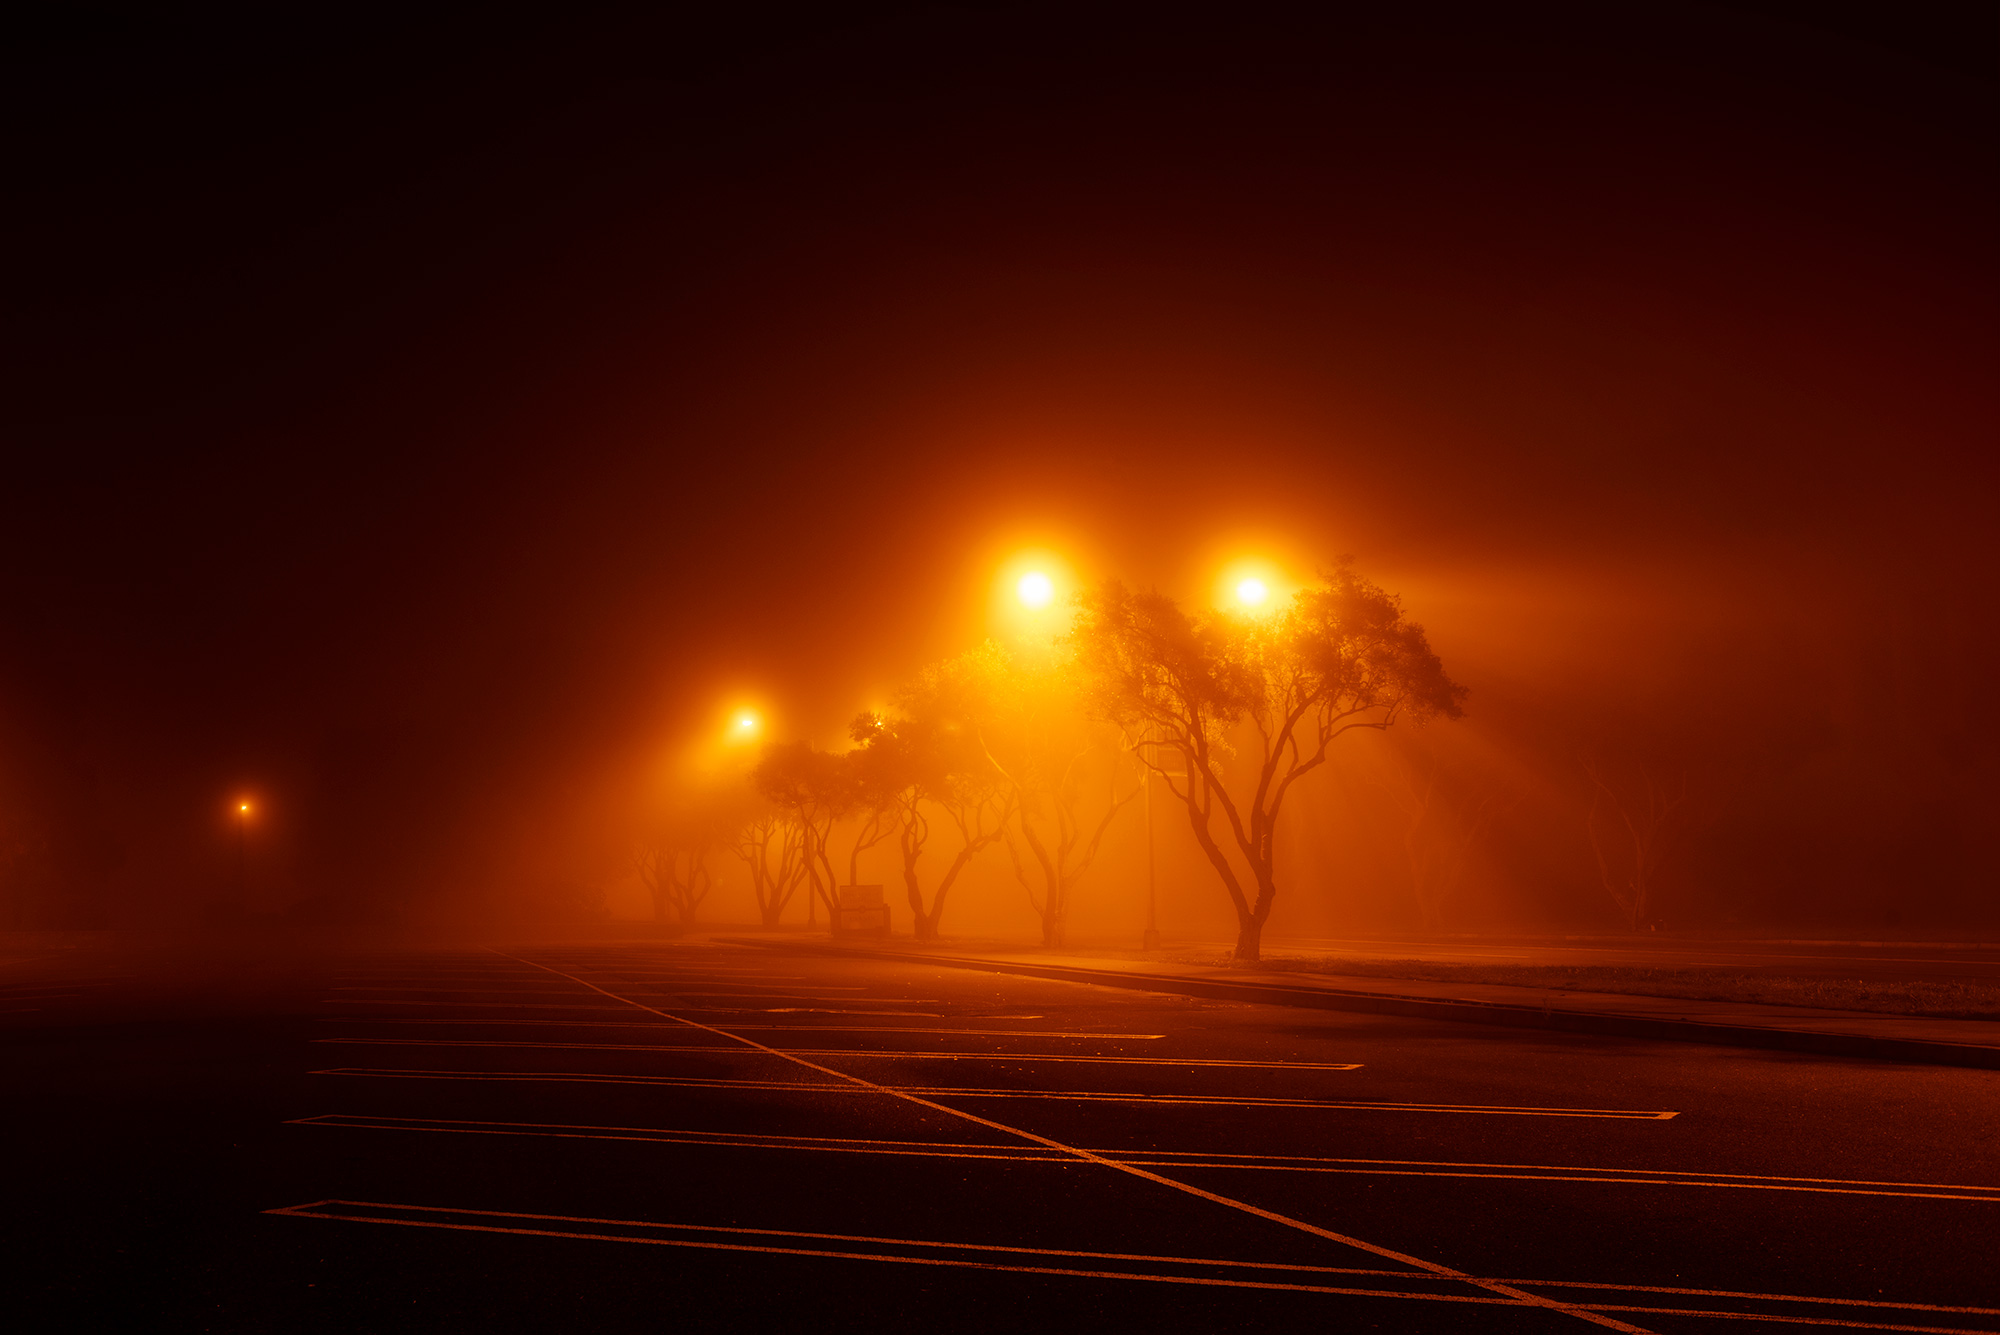 Parking lot at night with lights and fog.